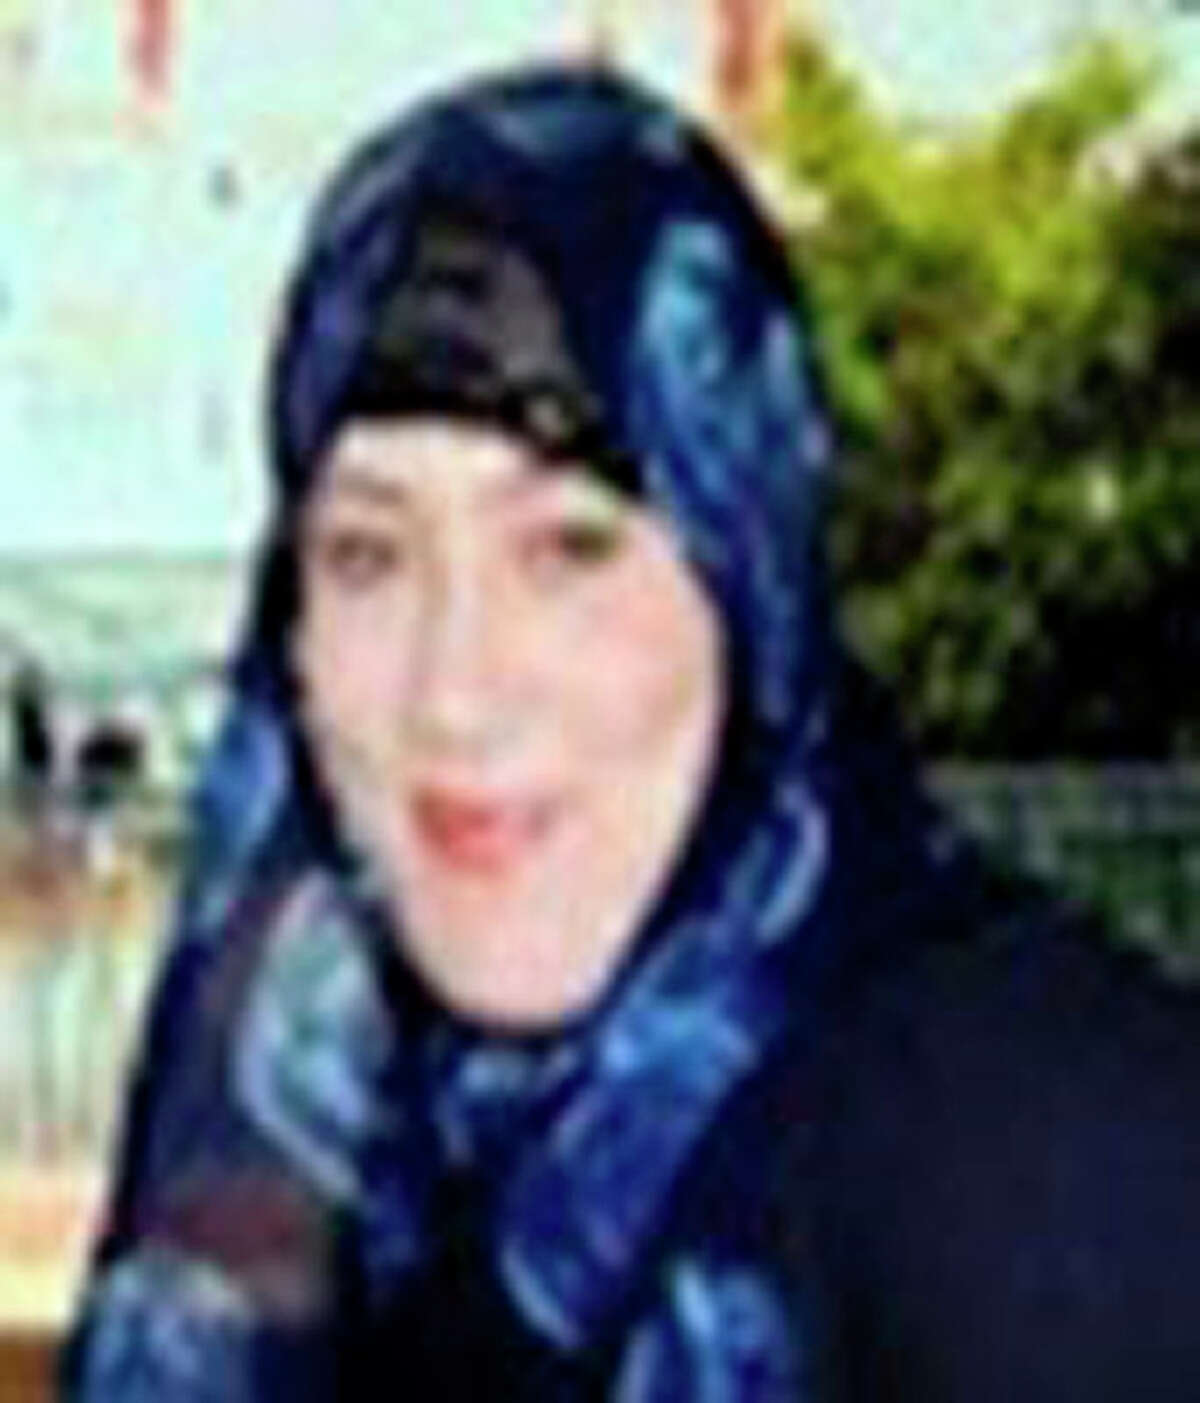 Undated image provided by Interpol shows Samantha Lewthwaite. Interpol has issued an arrest notice for Samantha Lewthwaite, the fugitive Briton whom news media have dubbed the